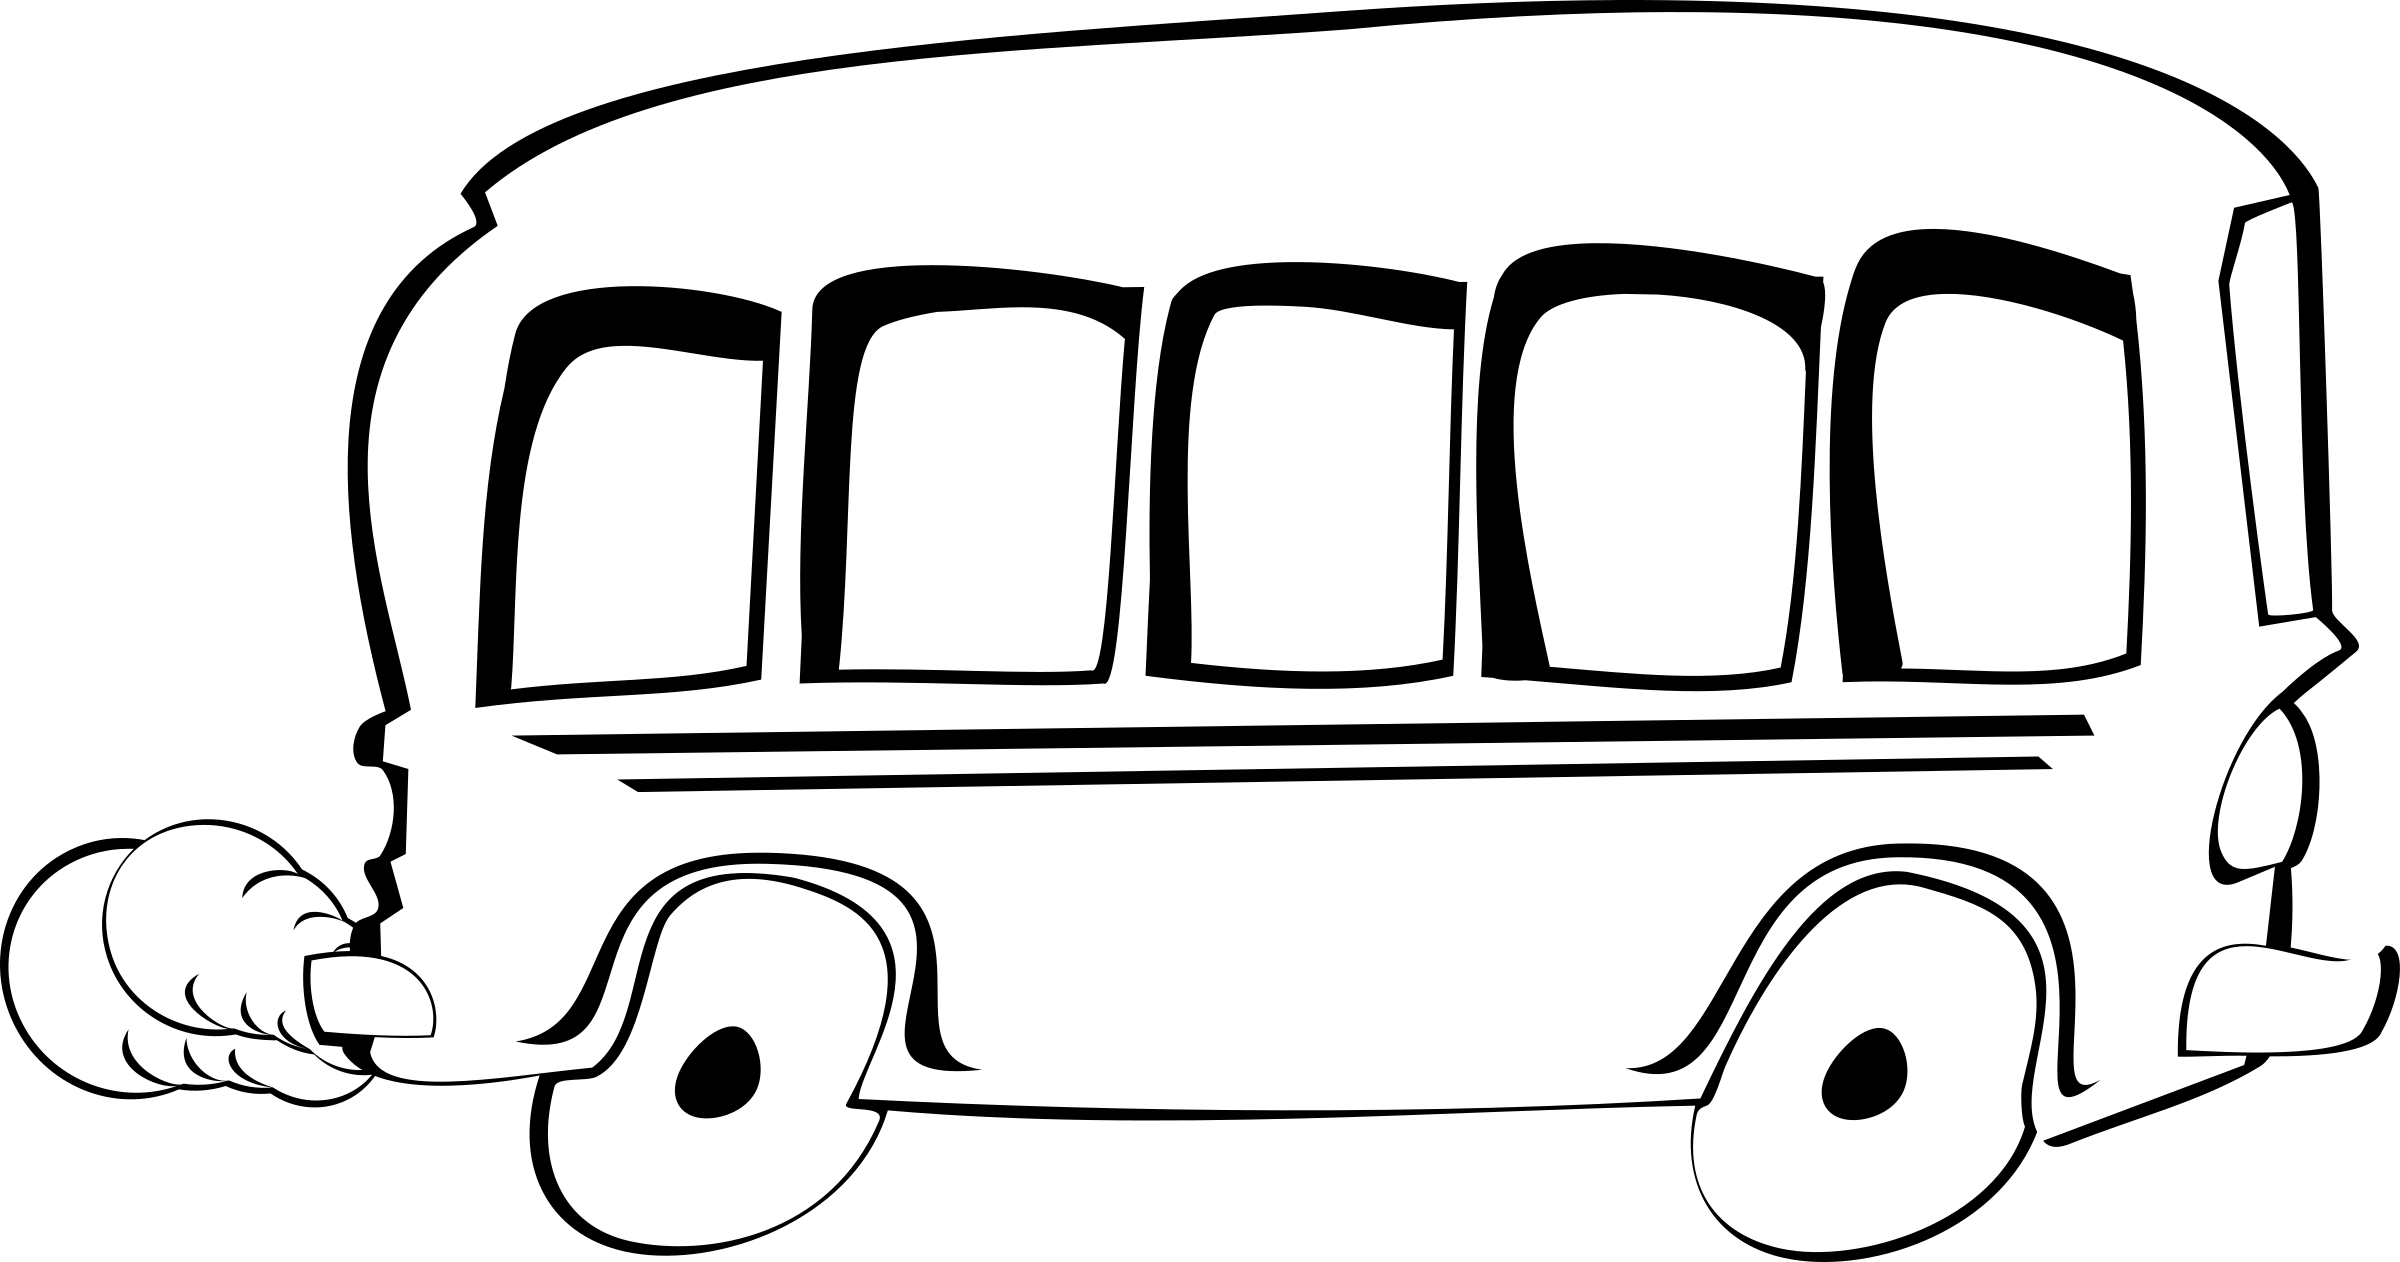 graphic freeuse download Bus black and white clipart. Remixed big image png